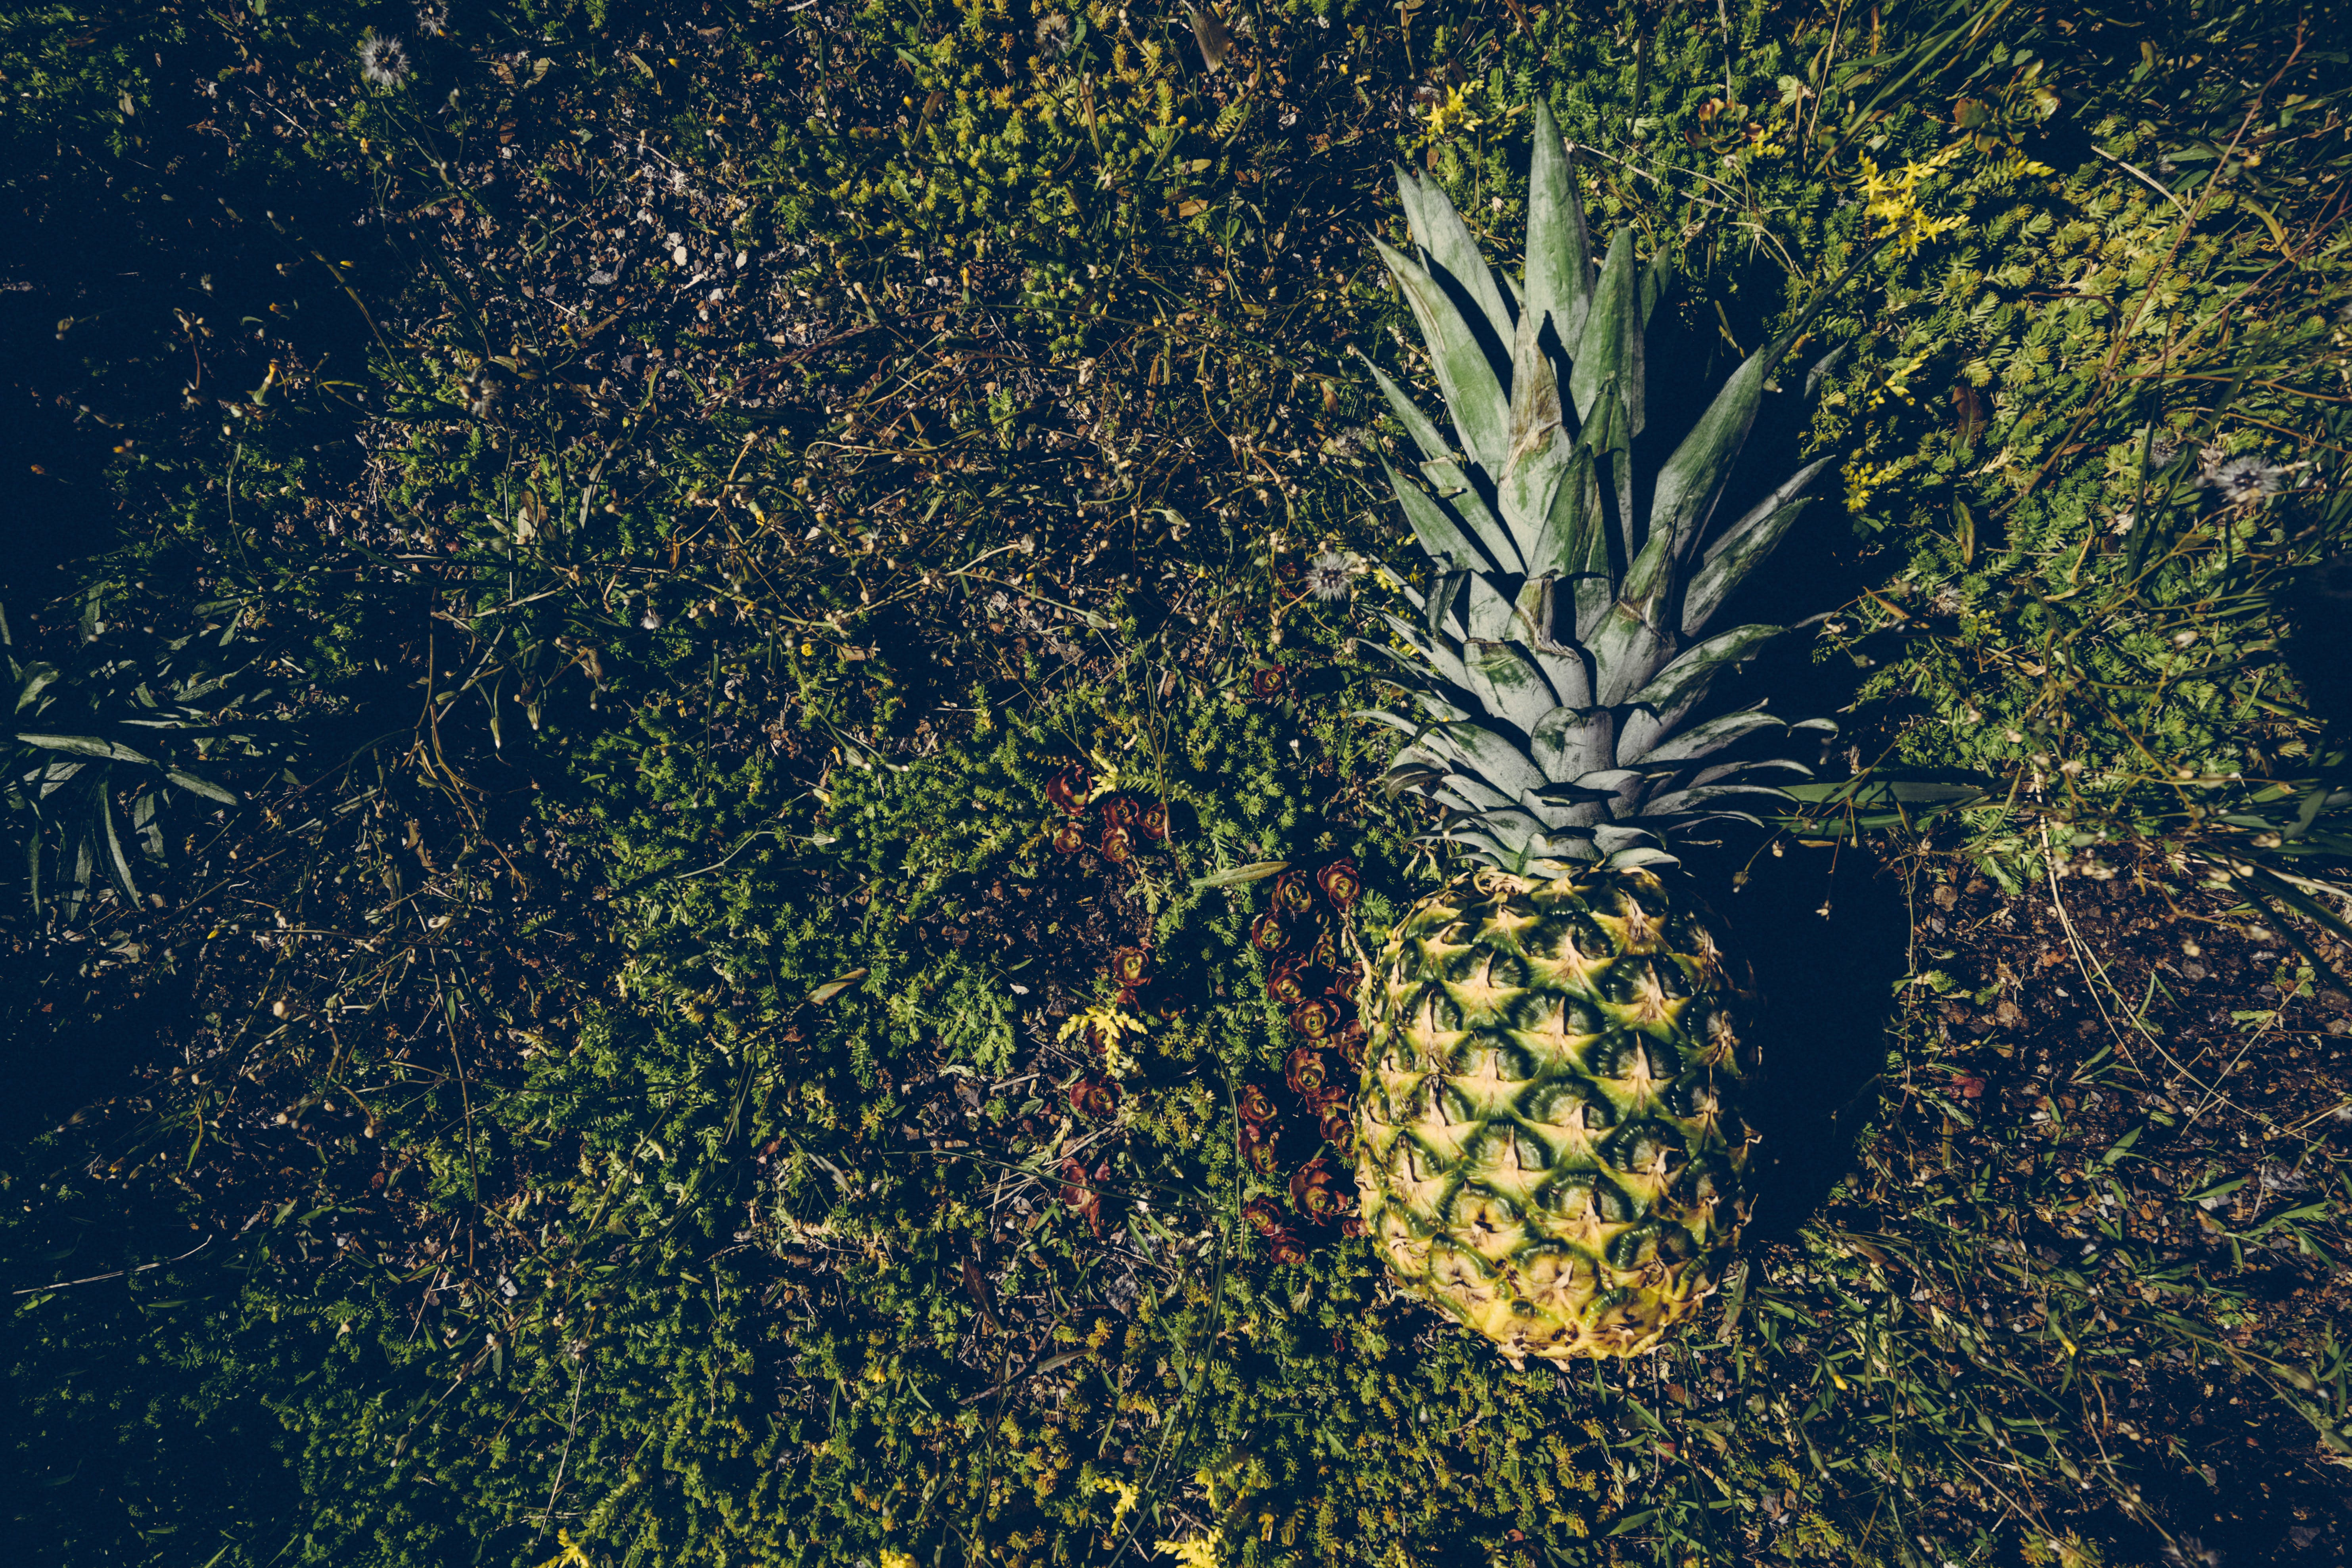 Pineapple Fruit on the Ground